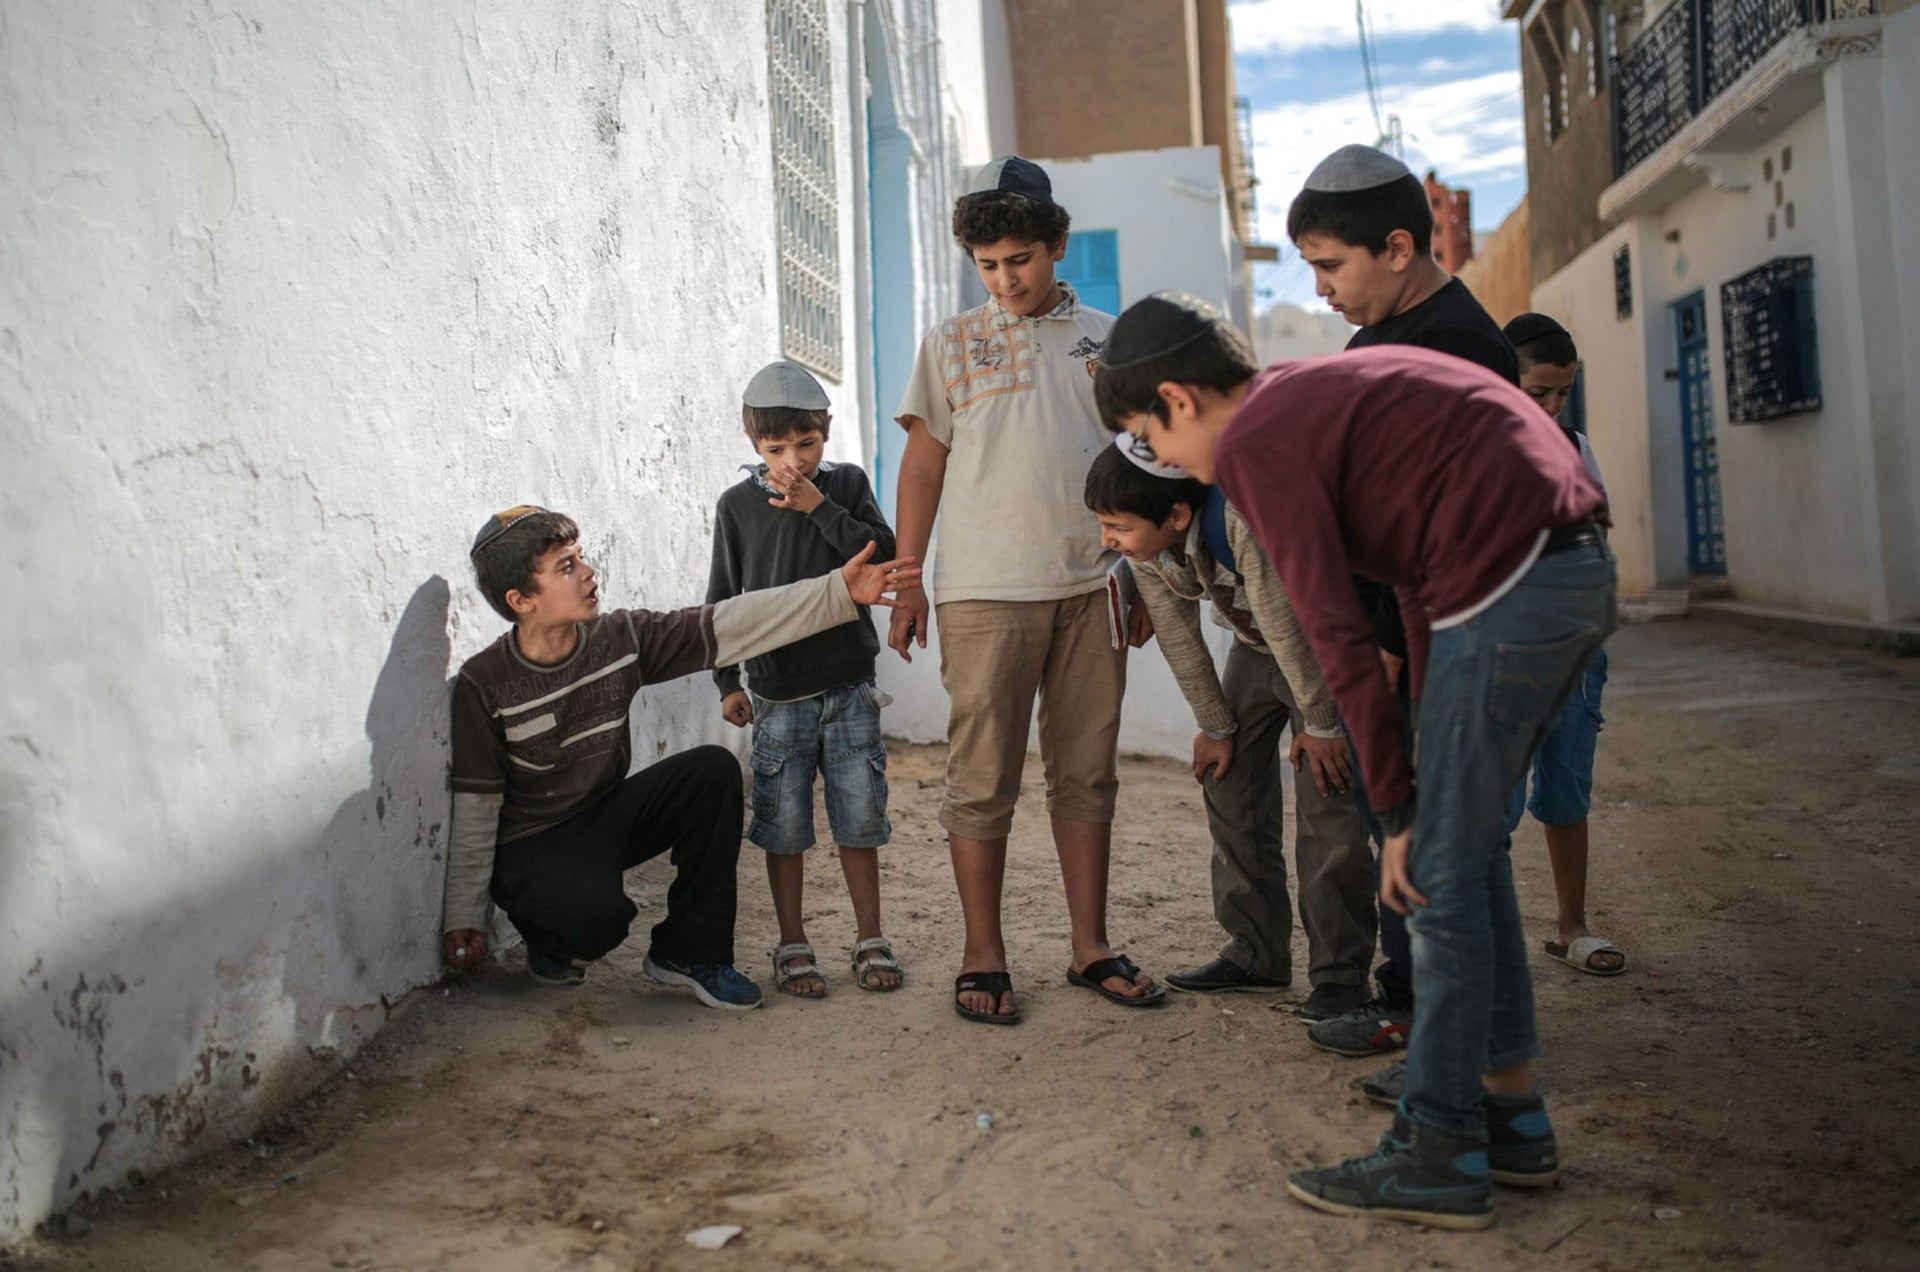 Boys play with marbles outside their school at Hara Kbira, the main Jewish neighborhood in the Island of Djerba, southern Tunisia,Oct. 30, 2015.